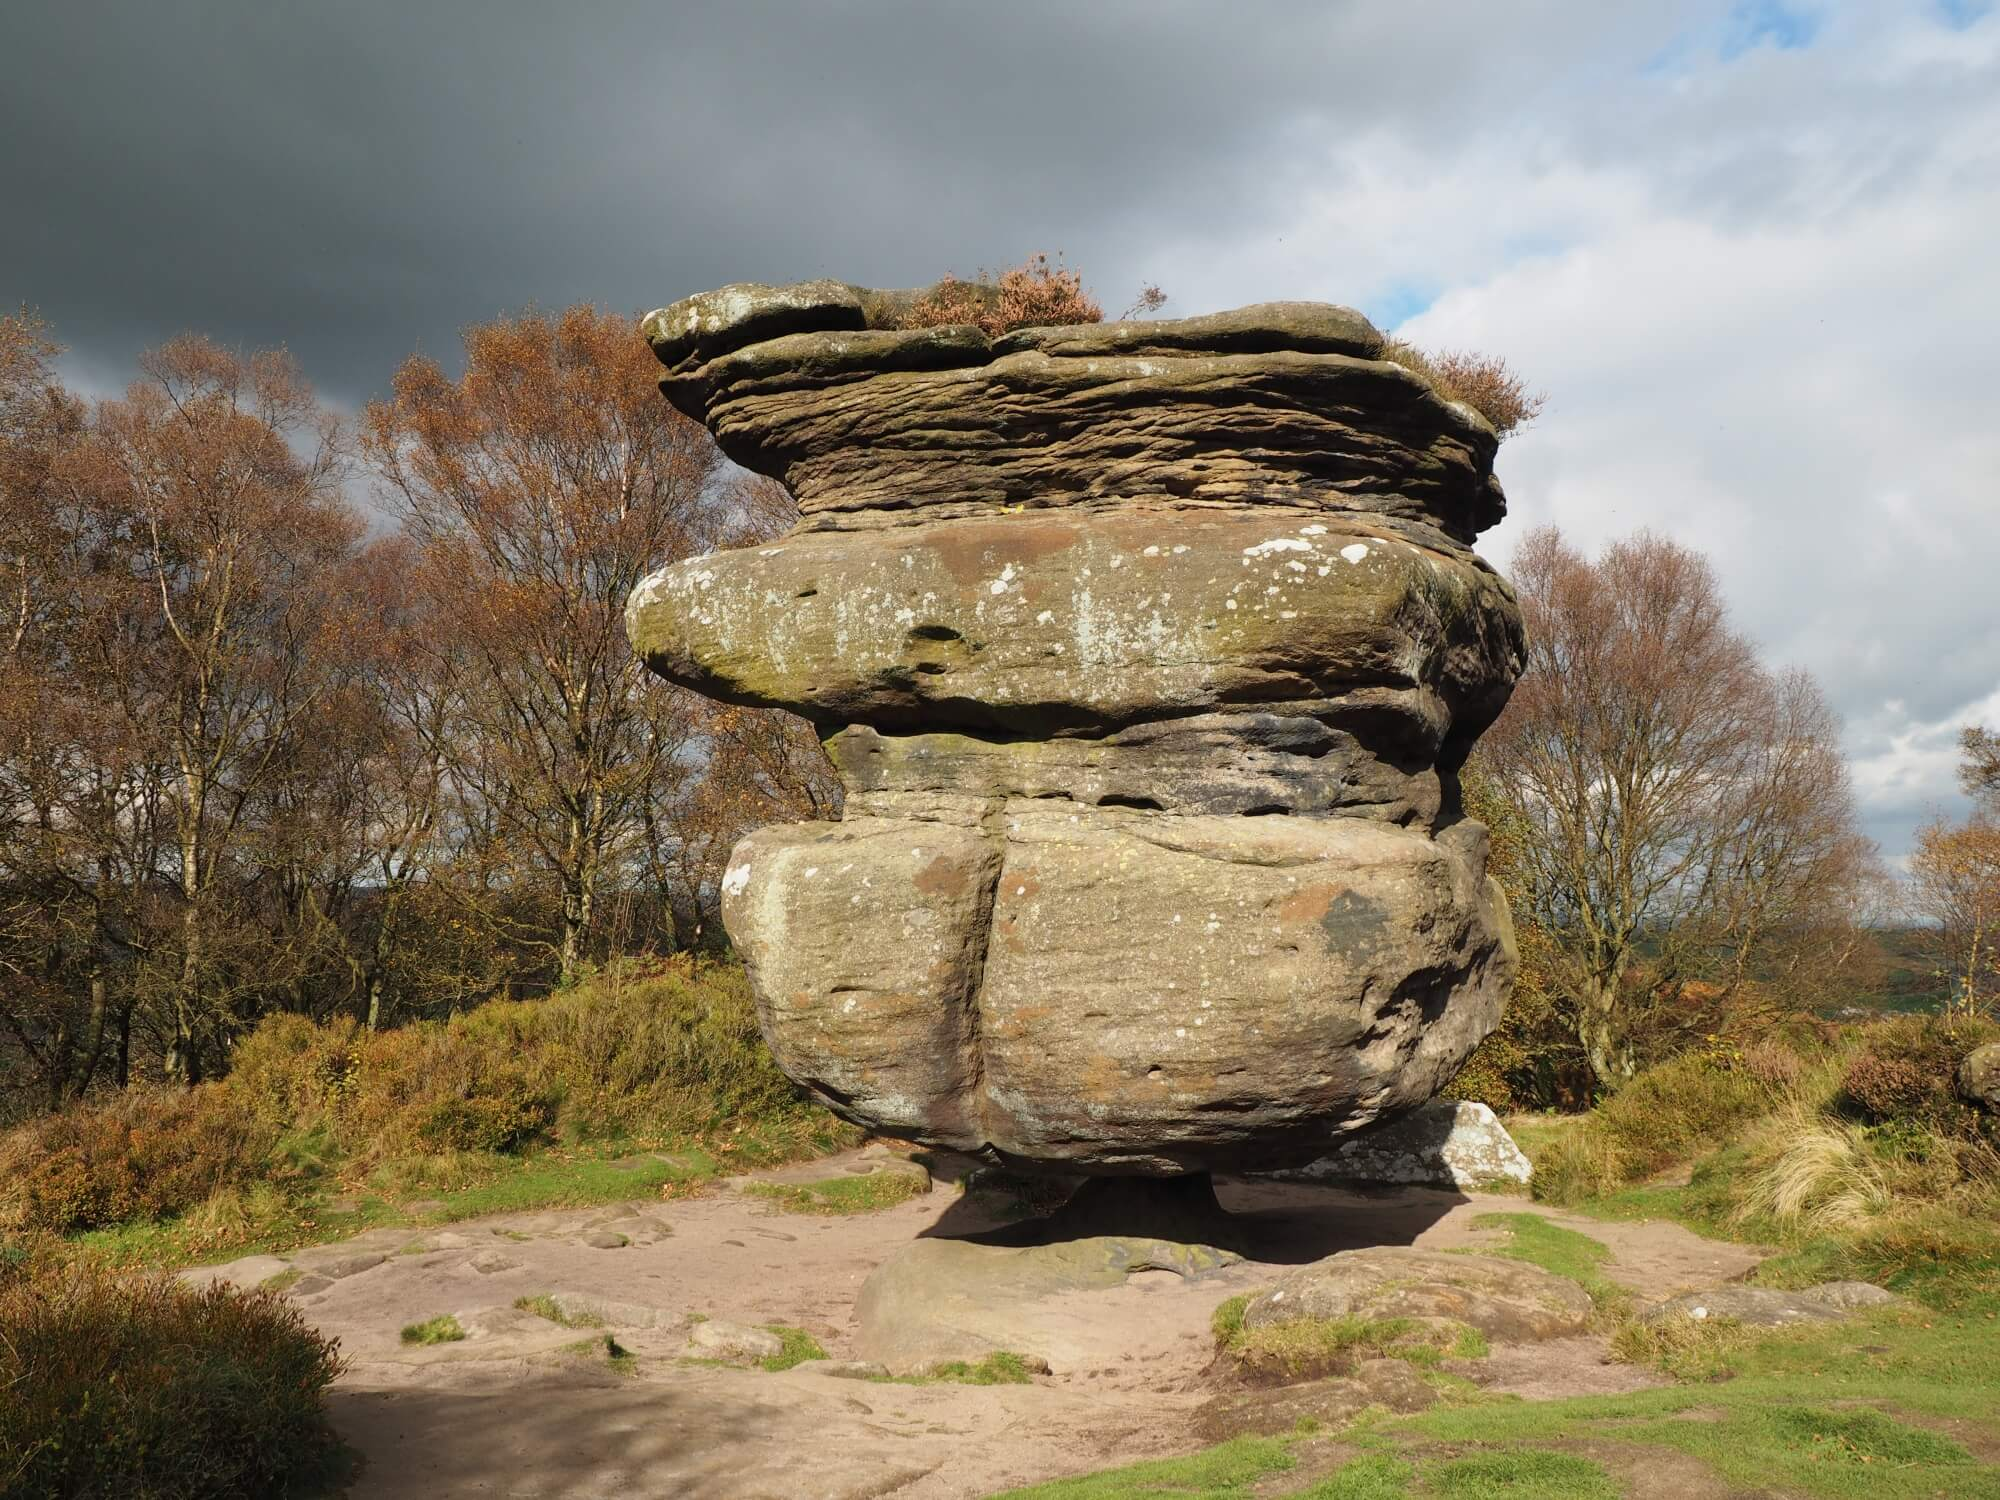 The Idol, Brimham Rocks